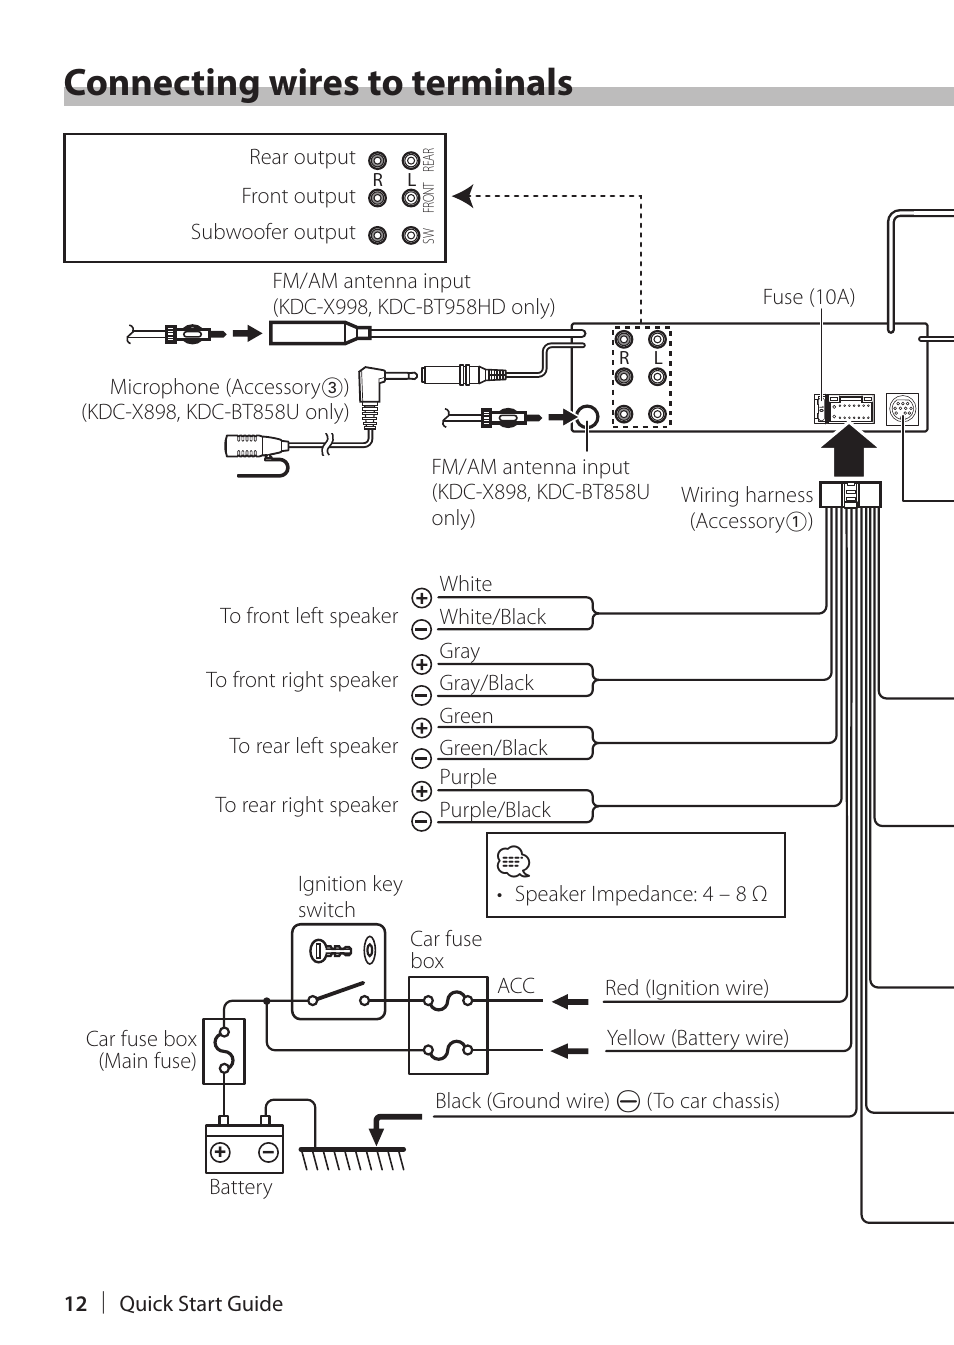 Kenwood Dnx9990hd Wiring Diagram | Wiring Liry on switch diagrams, internet of things diagrams, transformer diagrams, honda motorcycle repair diagrams, motor diagrams, smart car diagrams, battery diagrams, friendship bracelet diagrams, gmc fuse box diagrams, lighting diagrams, engine diagrams, electrical diagrams, troubleshooting diagrams, electronic circuit diagrams, pinout diagrams, led circuit diagrams, hvac diagrams, series and parallel circuits diagrams, sincgars radio configurations diagrams,